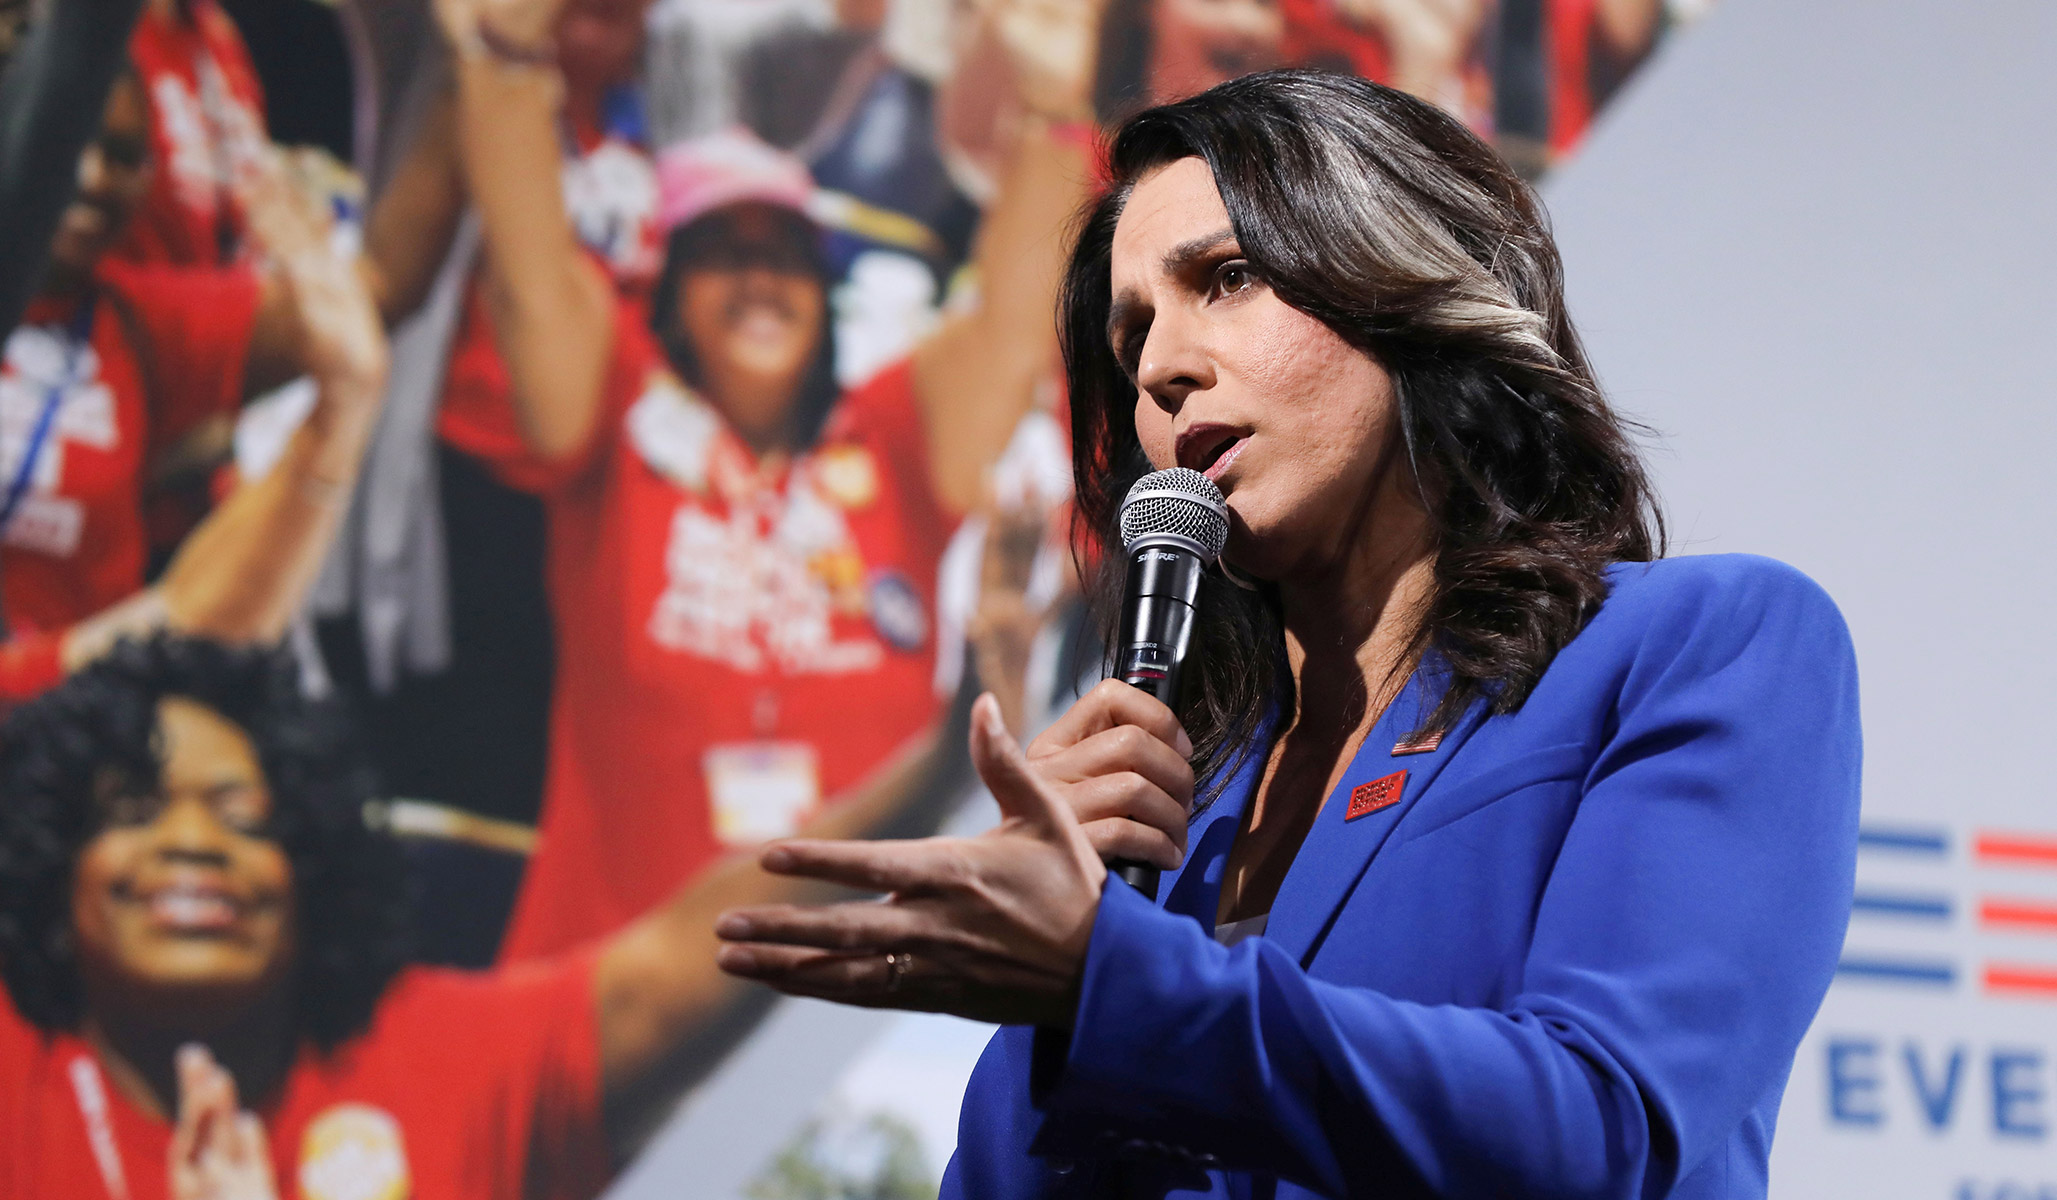 On Abortion, Tulsi Gabbard Sees Something Other Democrats Don't